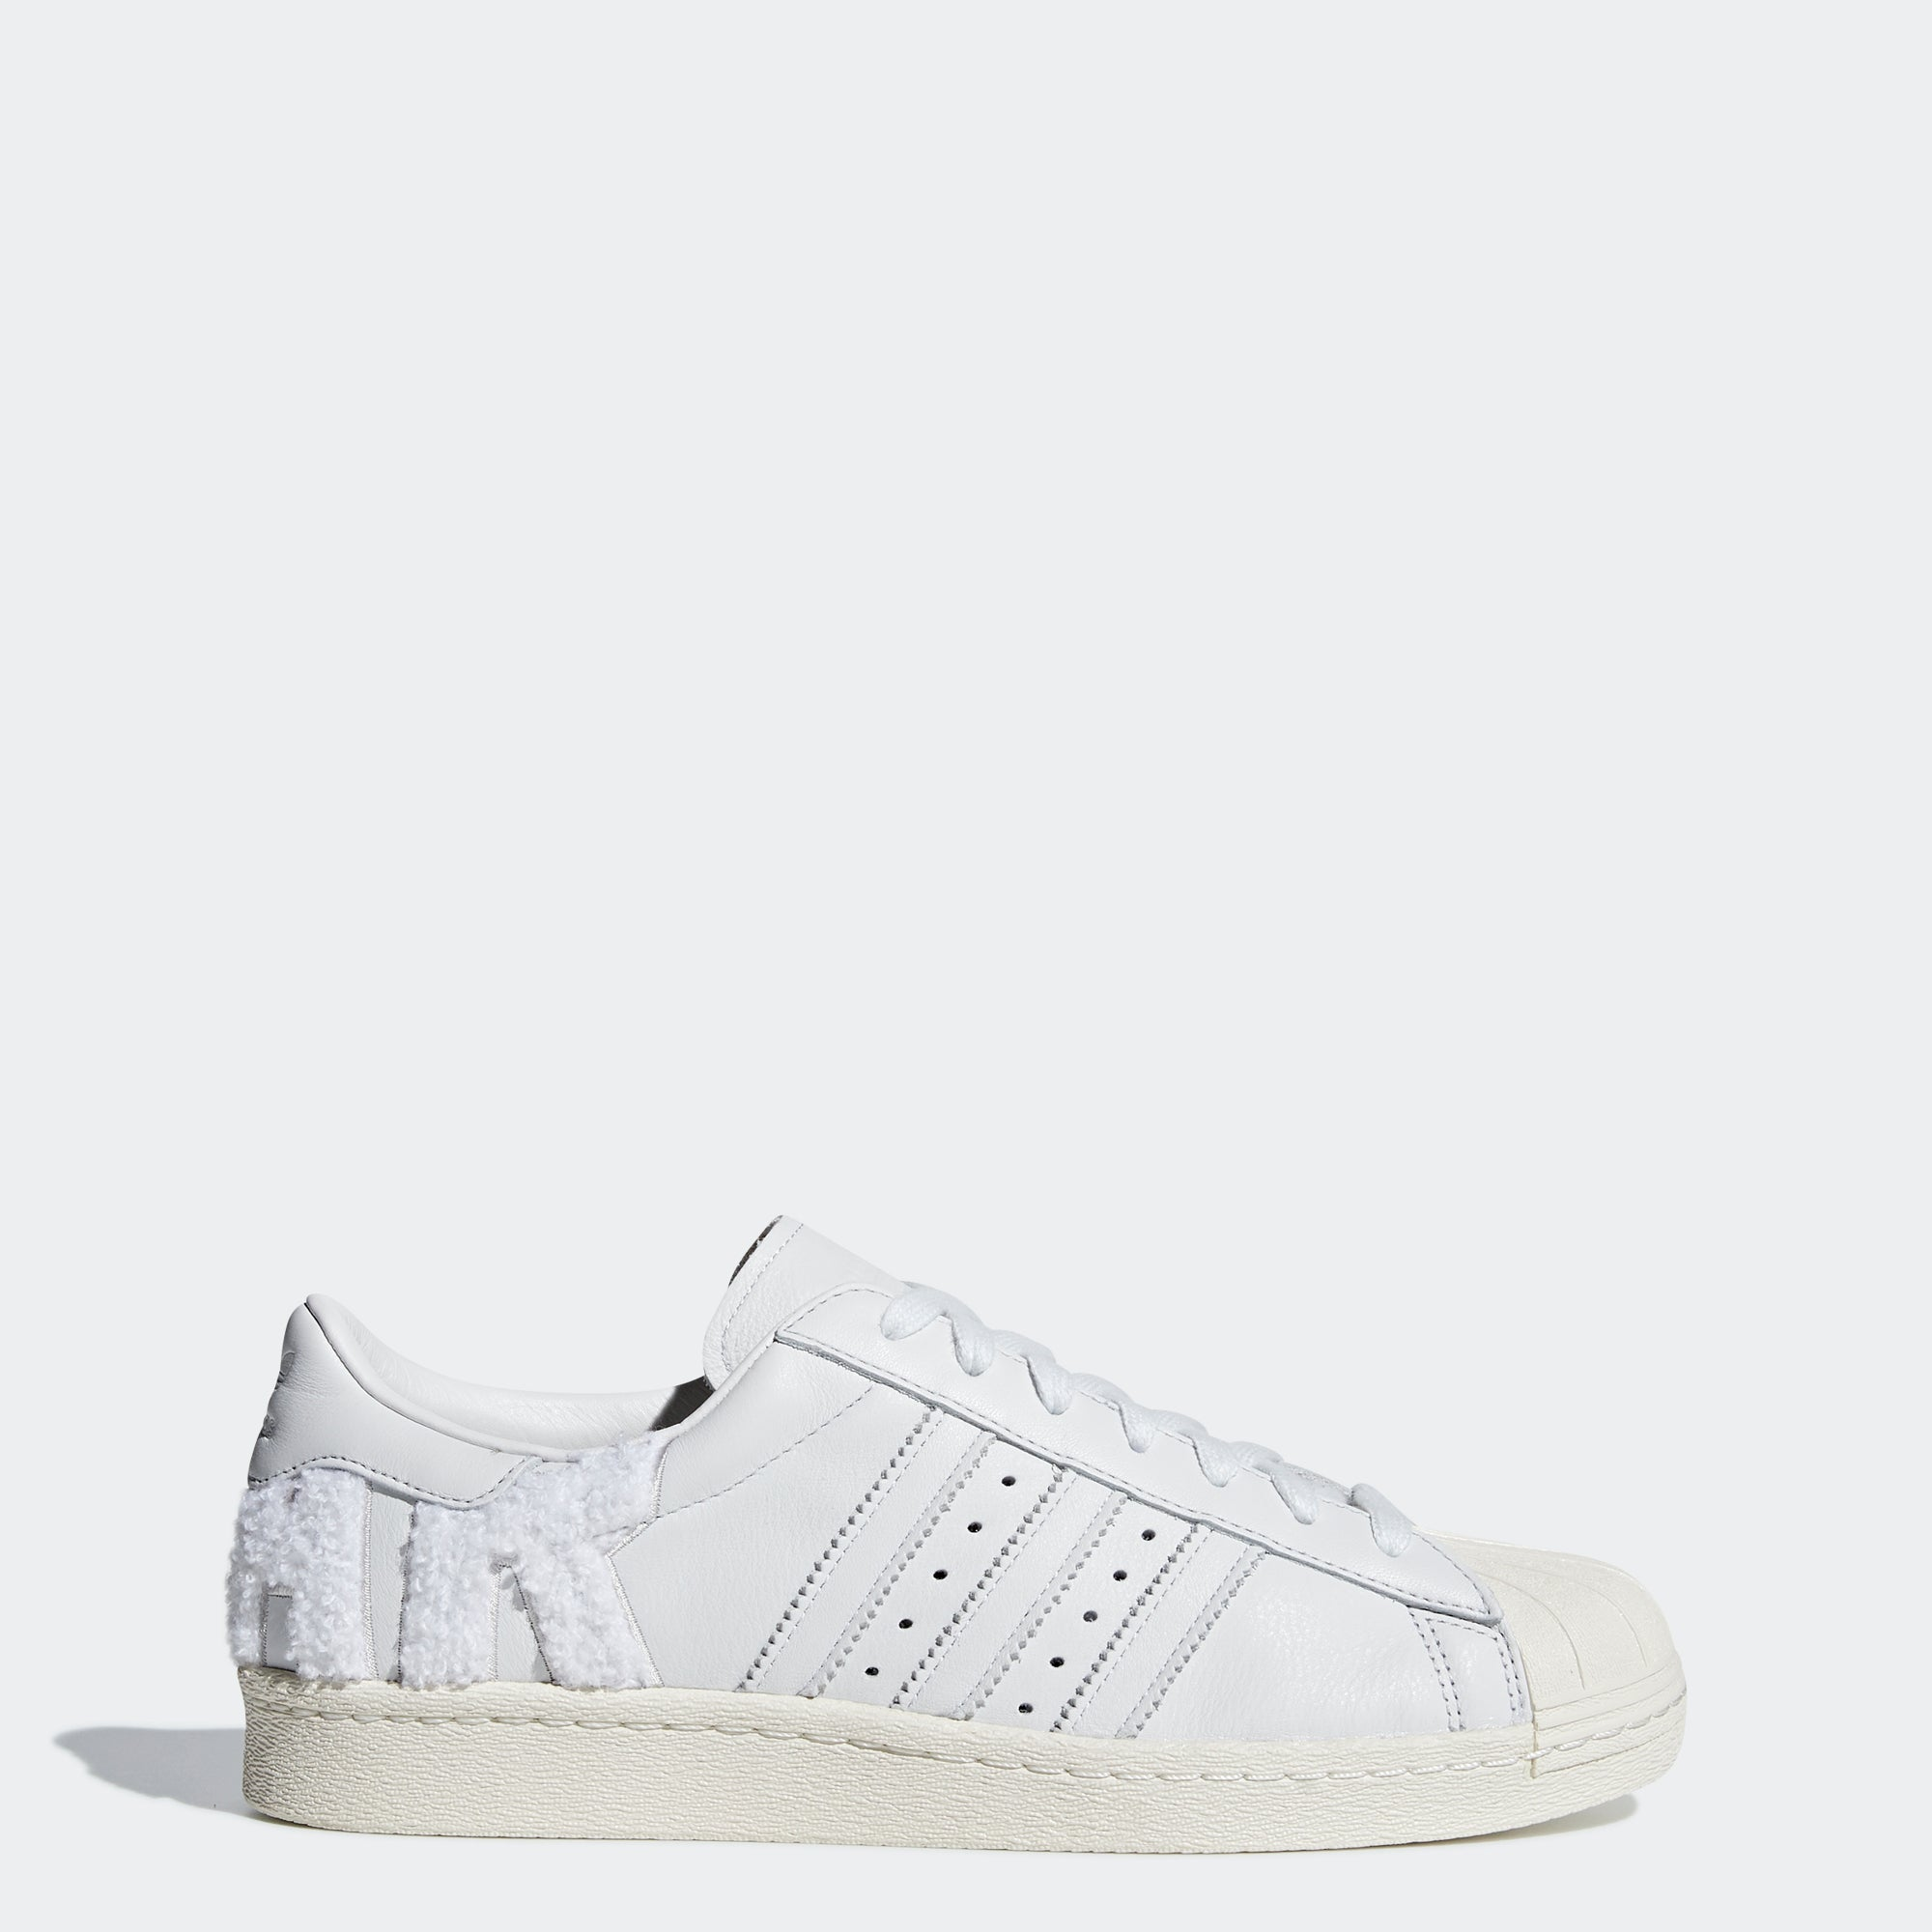 competitive price 73644 366ca adidas Superstar 80s Shoes Crystal White B37995 | Chicago ...